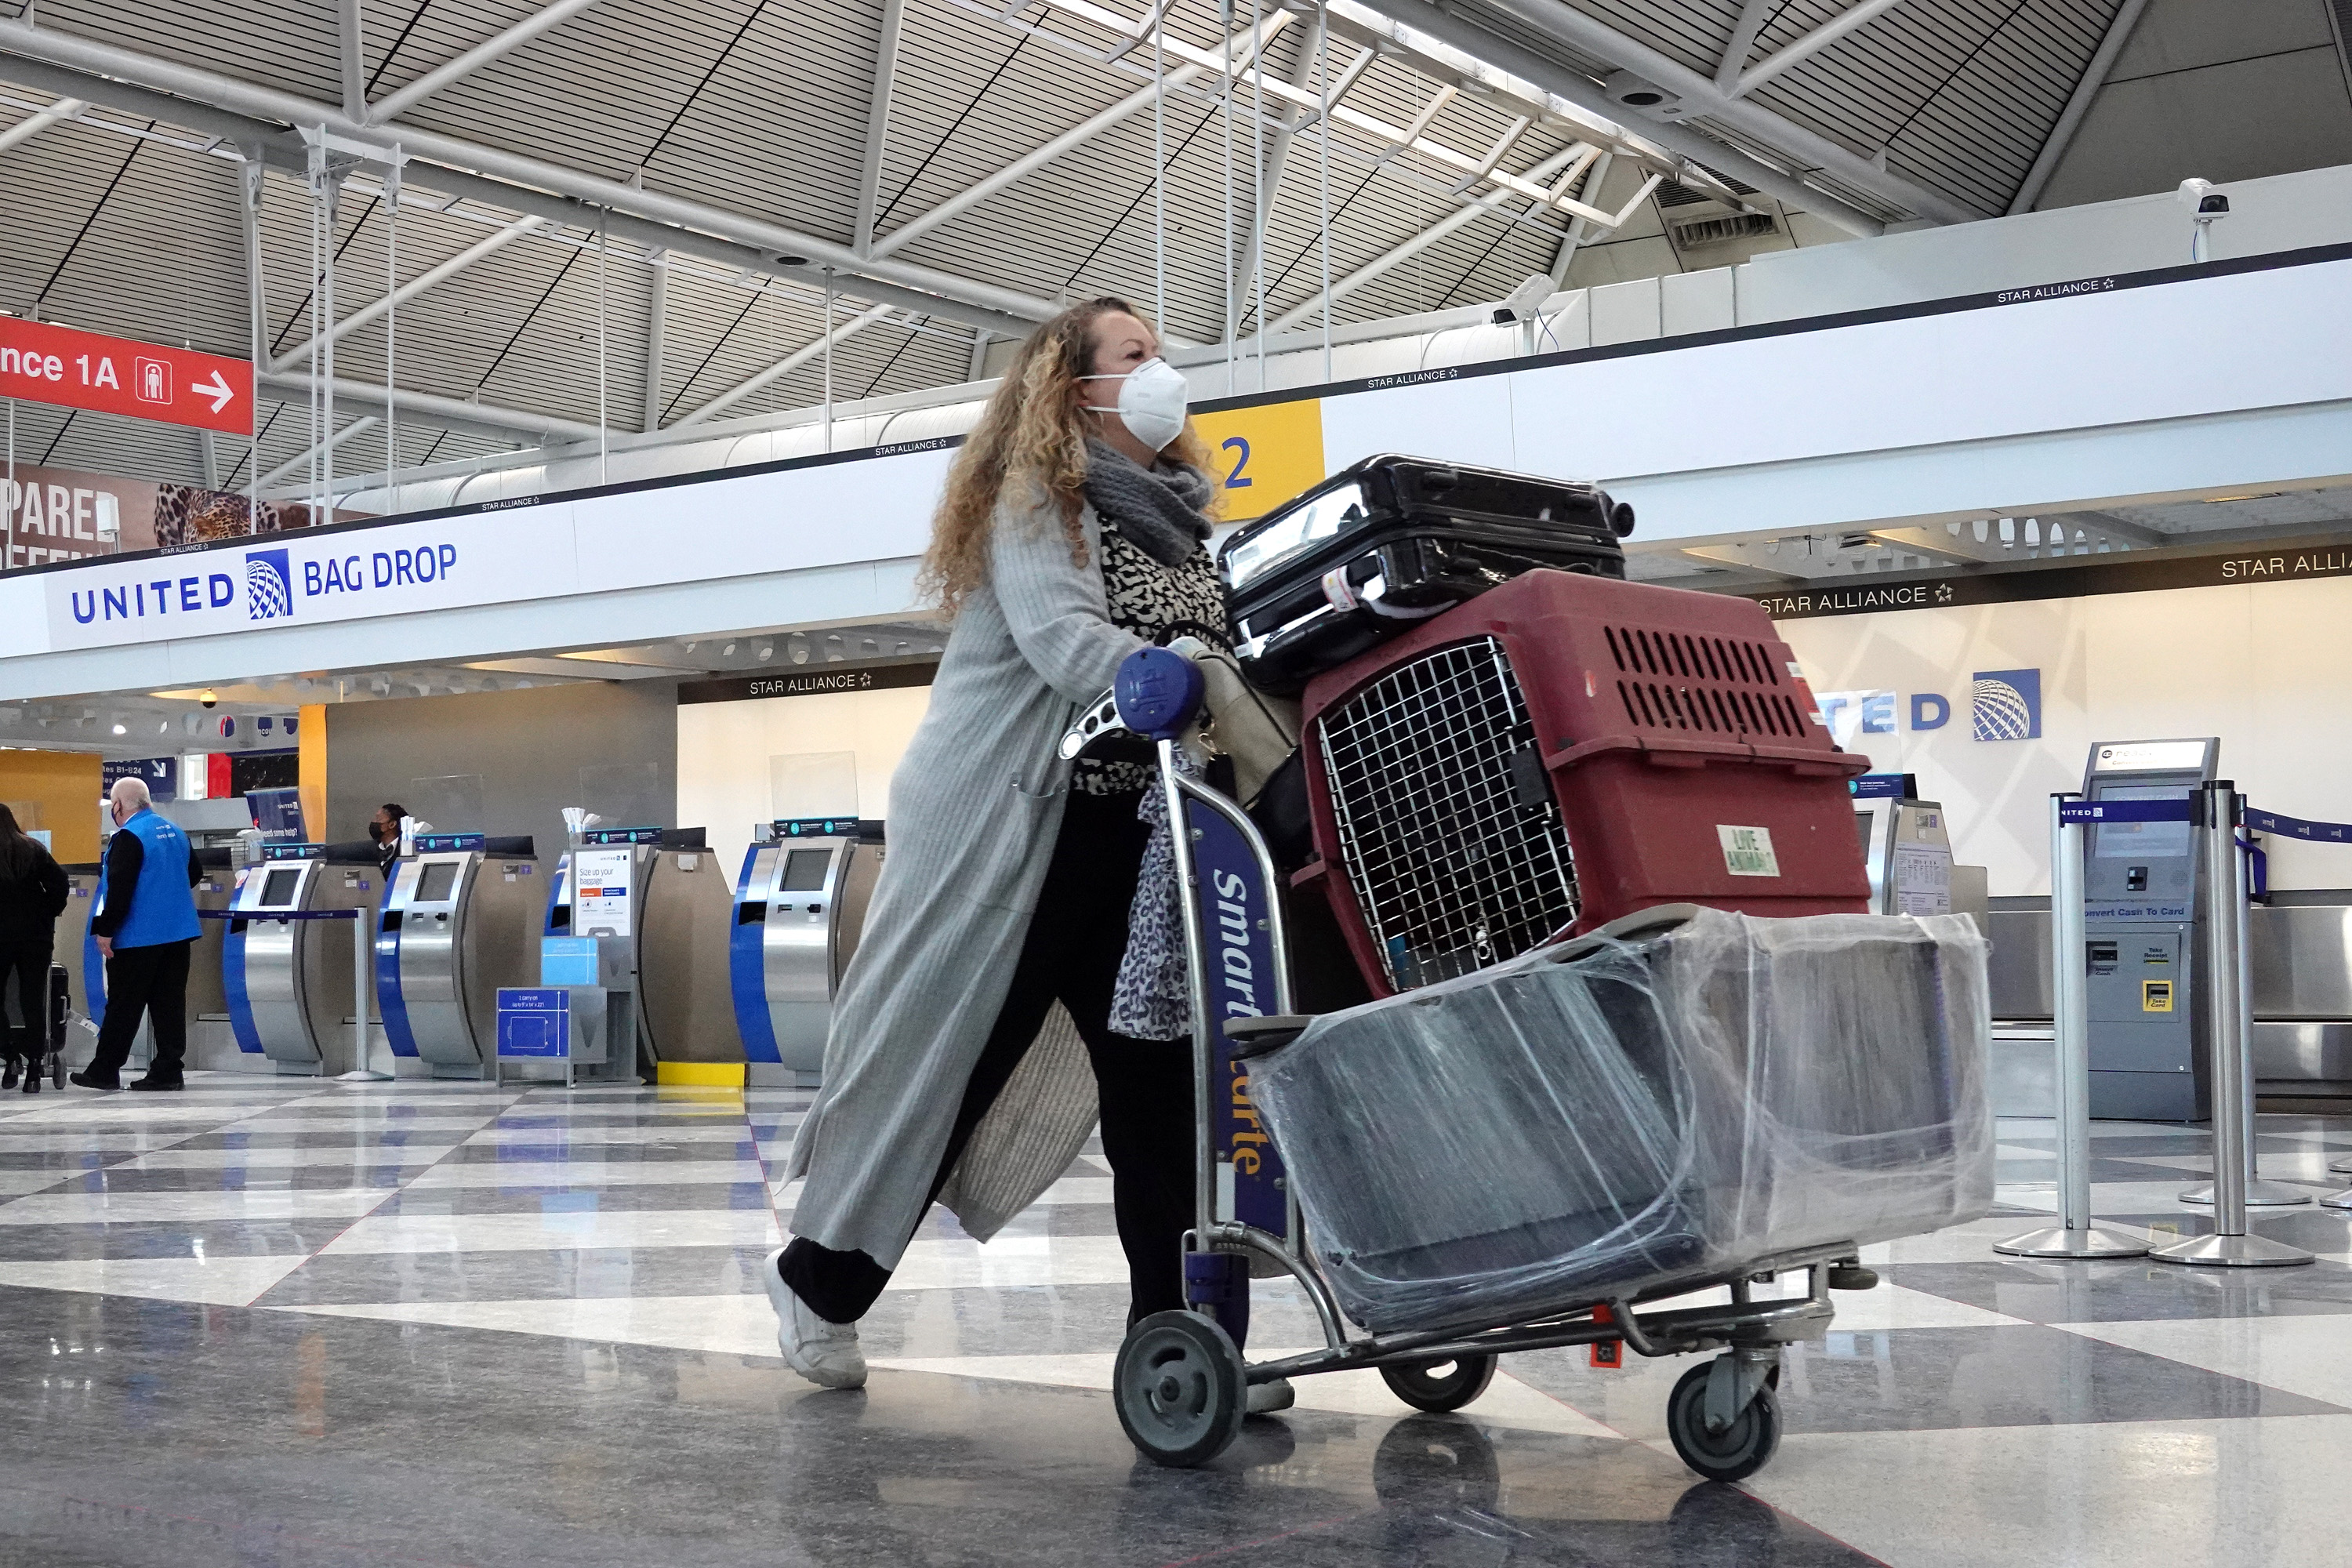 A passenger arrives for a United Airlines flight at O'Hare International Airport earlier this month.